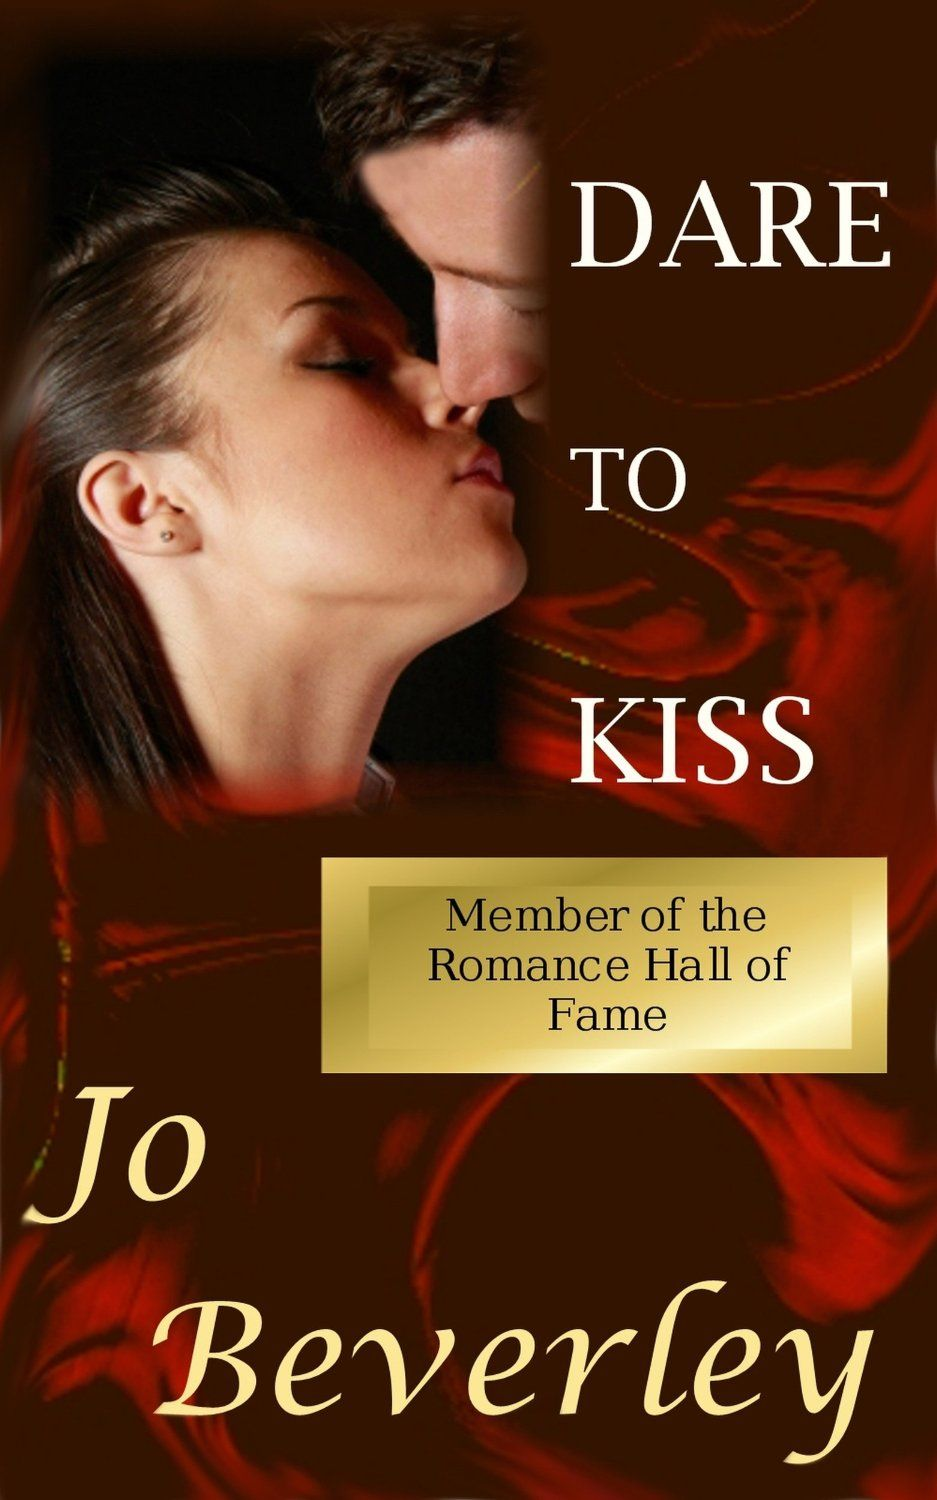 Dare to Kiss, by Jo Beverley (1.99) Historical romance